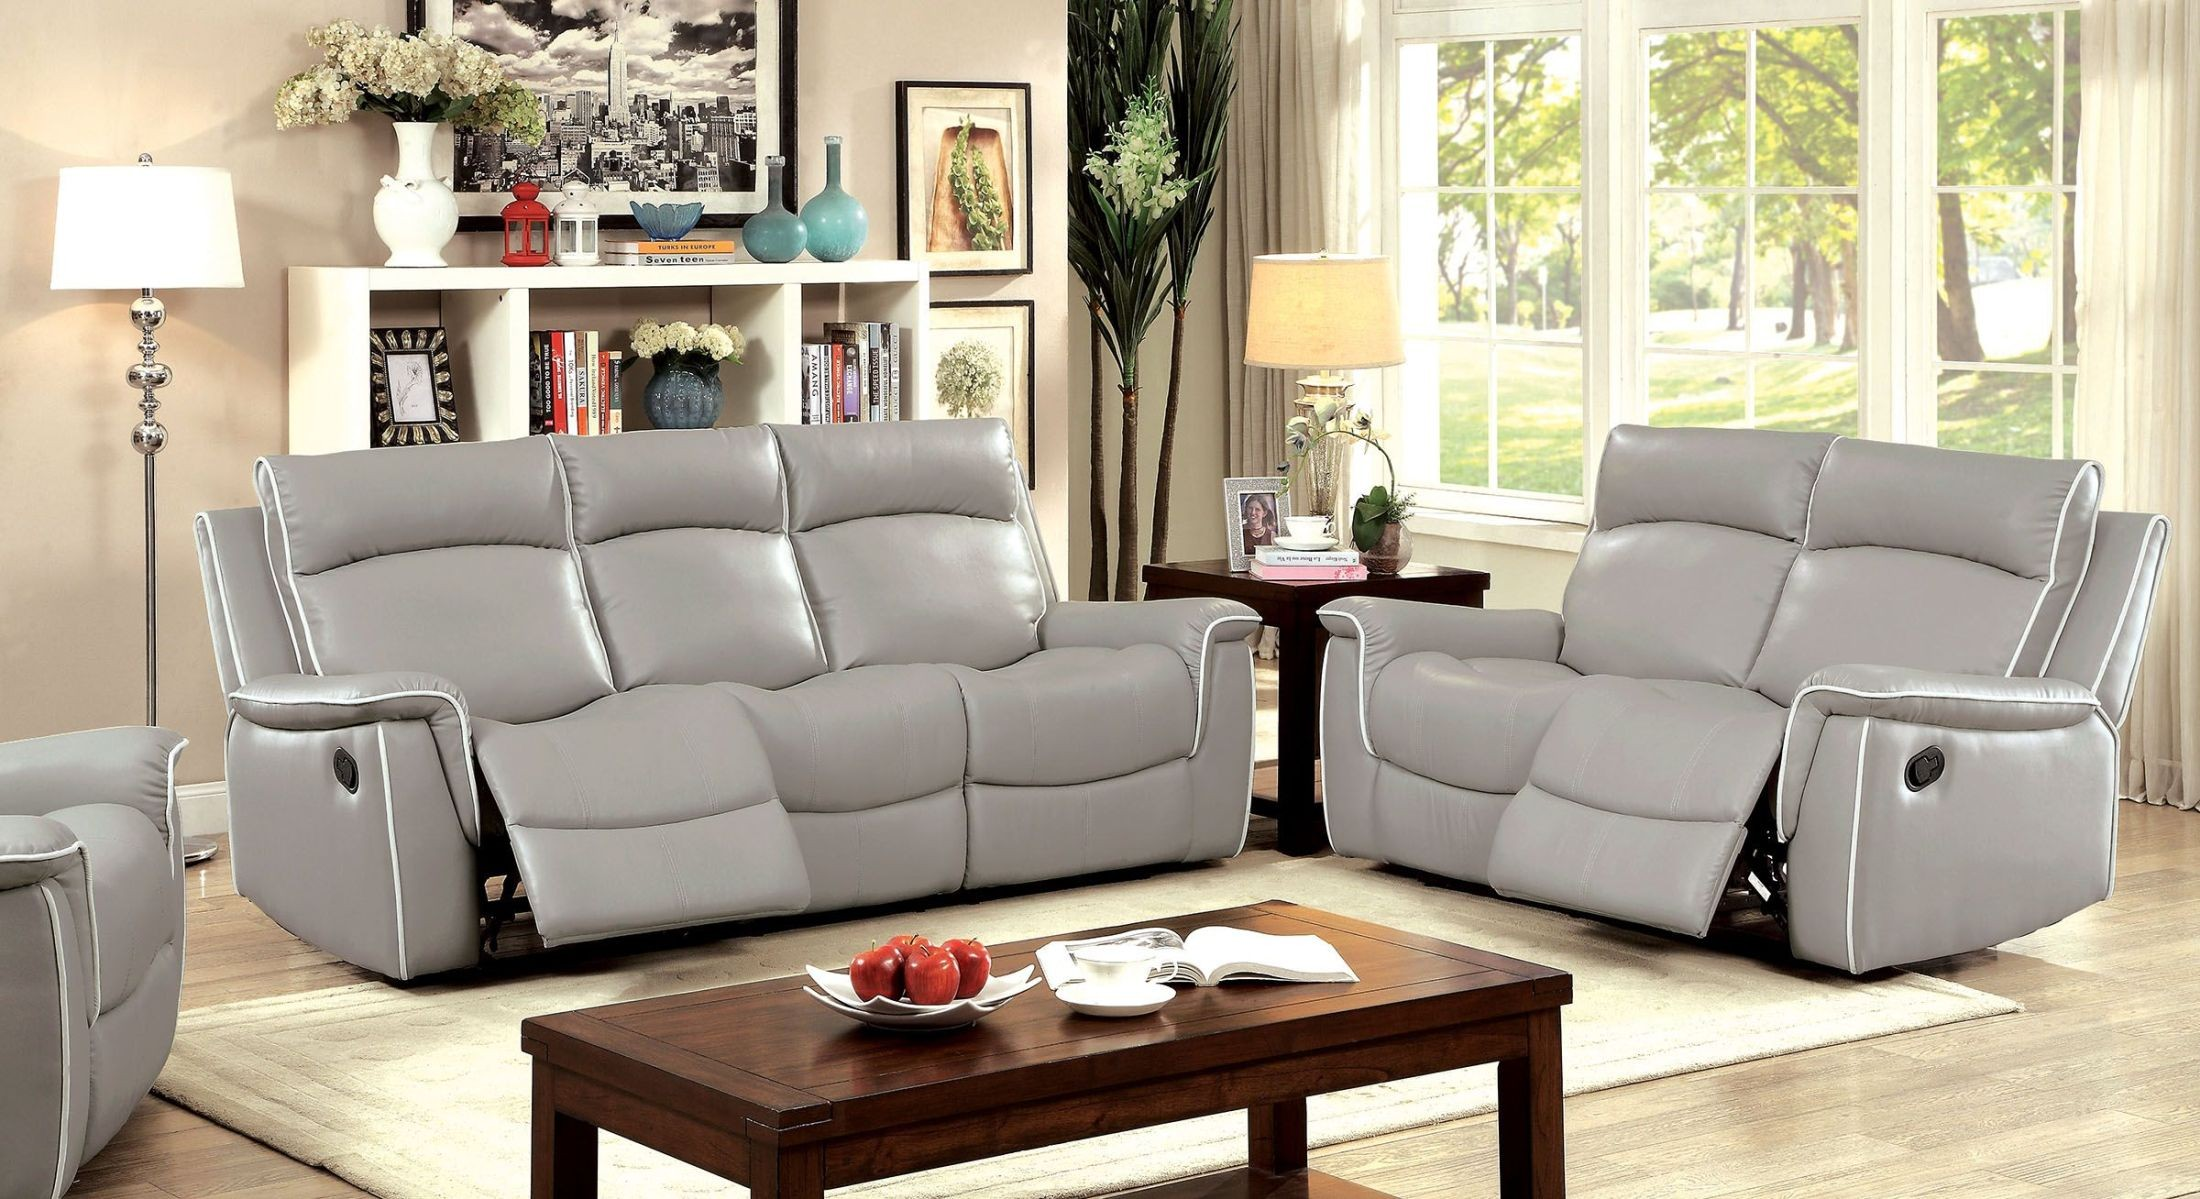 Salome Light Gray Recliner Living Room Set From Furniture